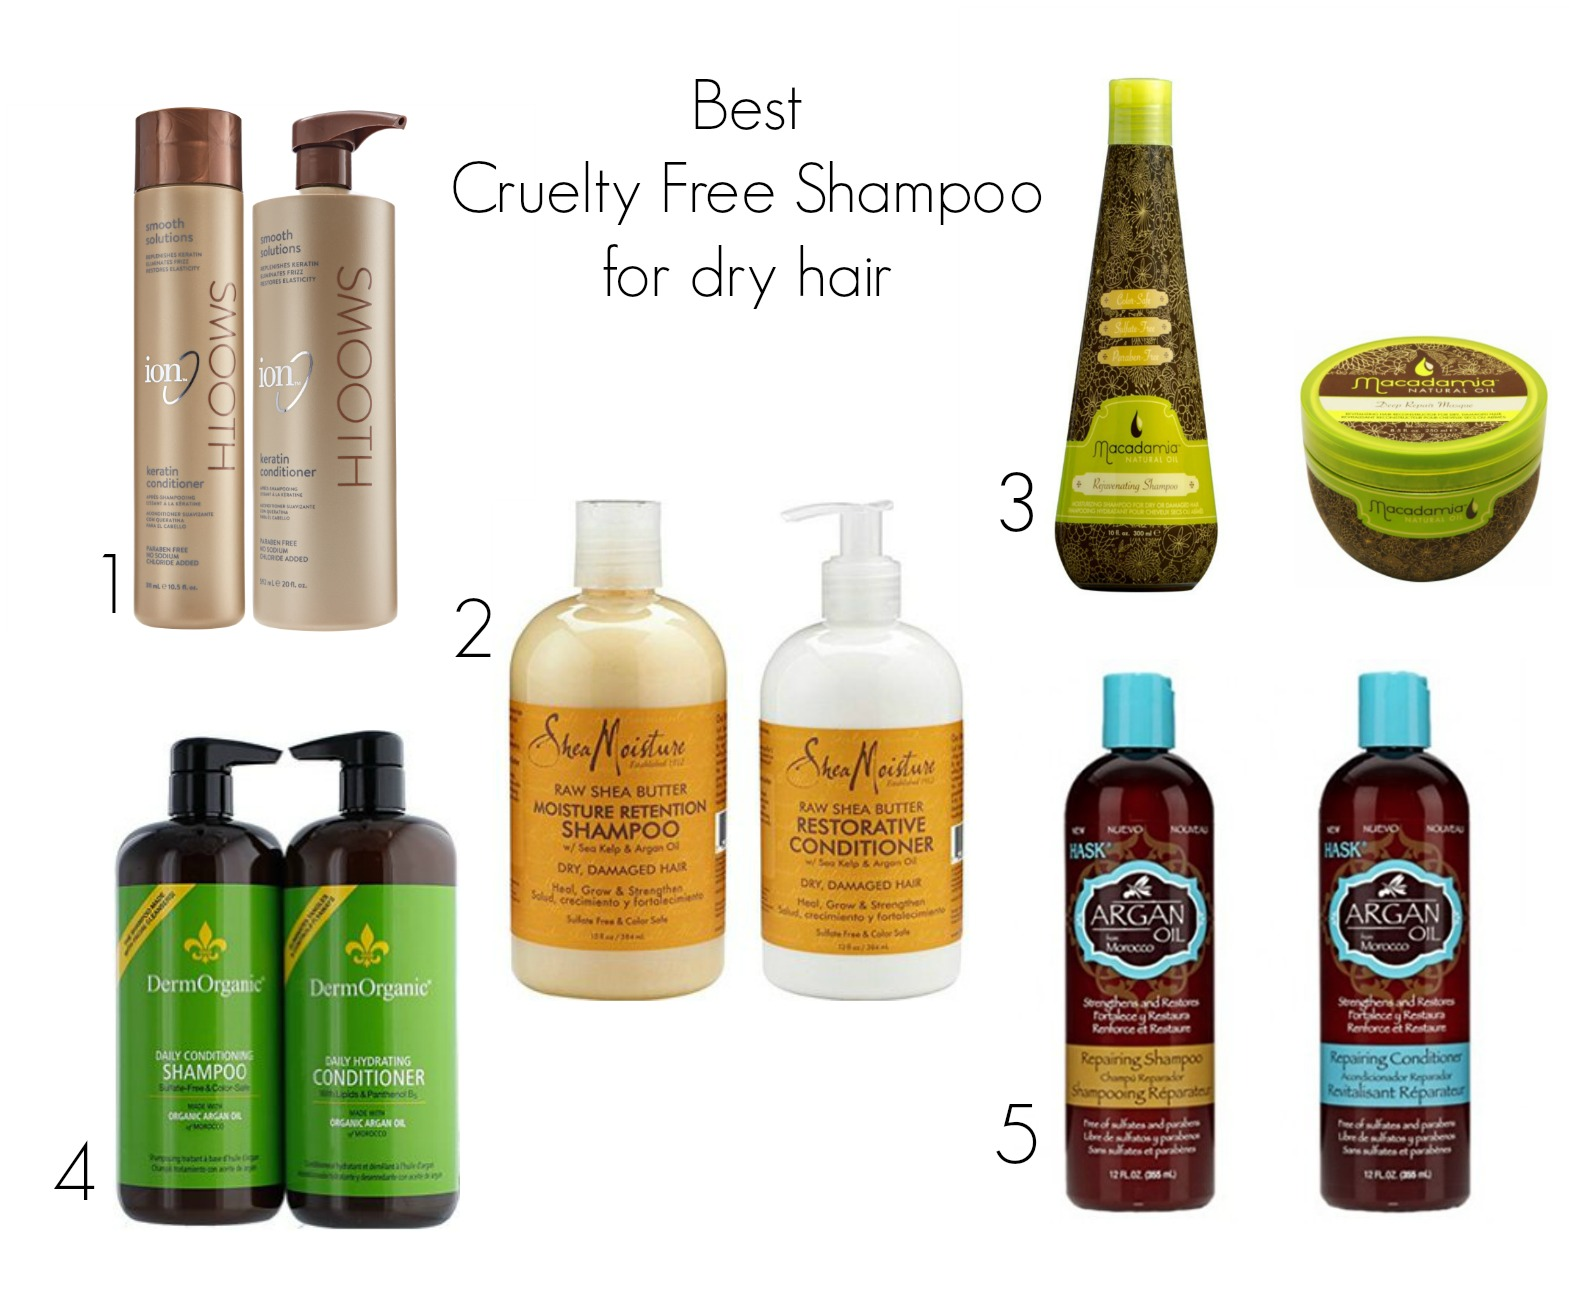 Best Cruelty Free Shampoo For Dry Hair